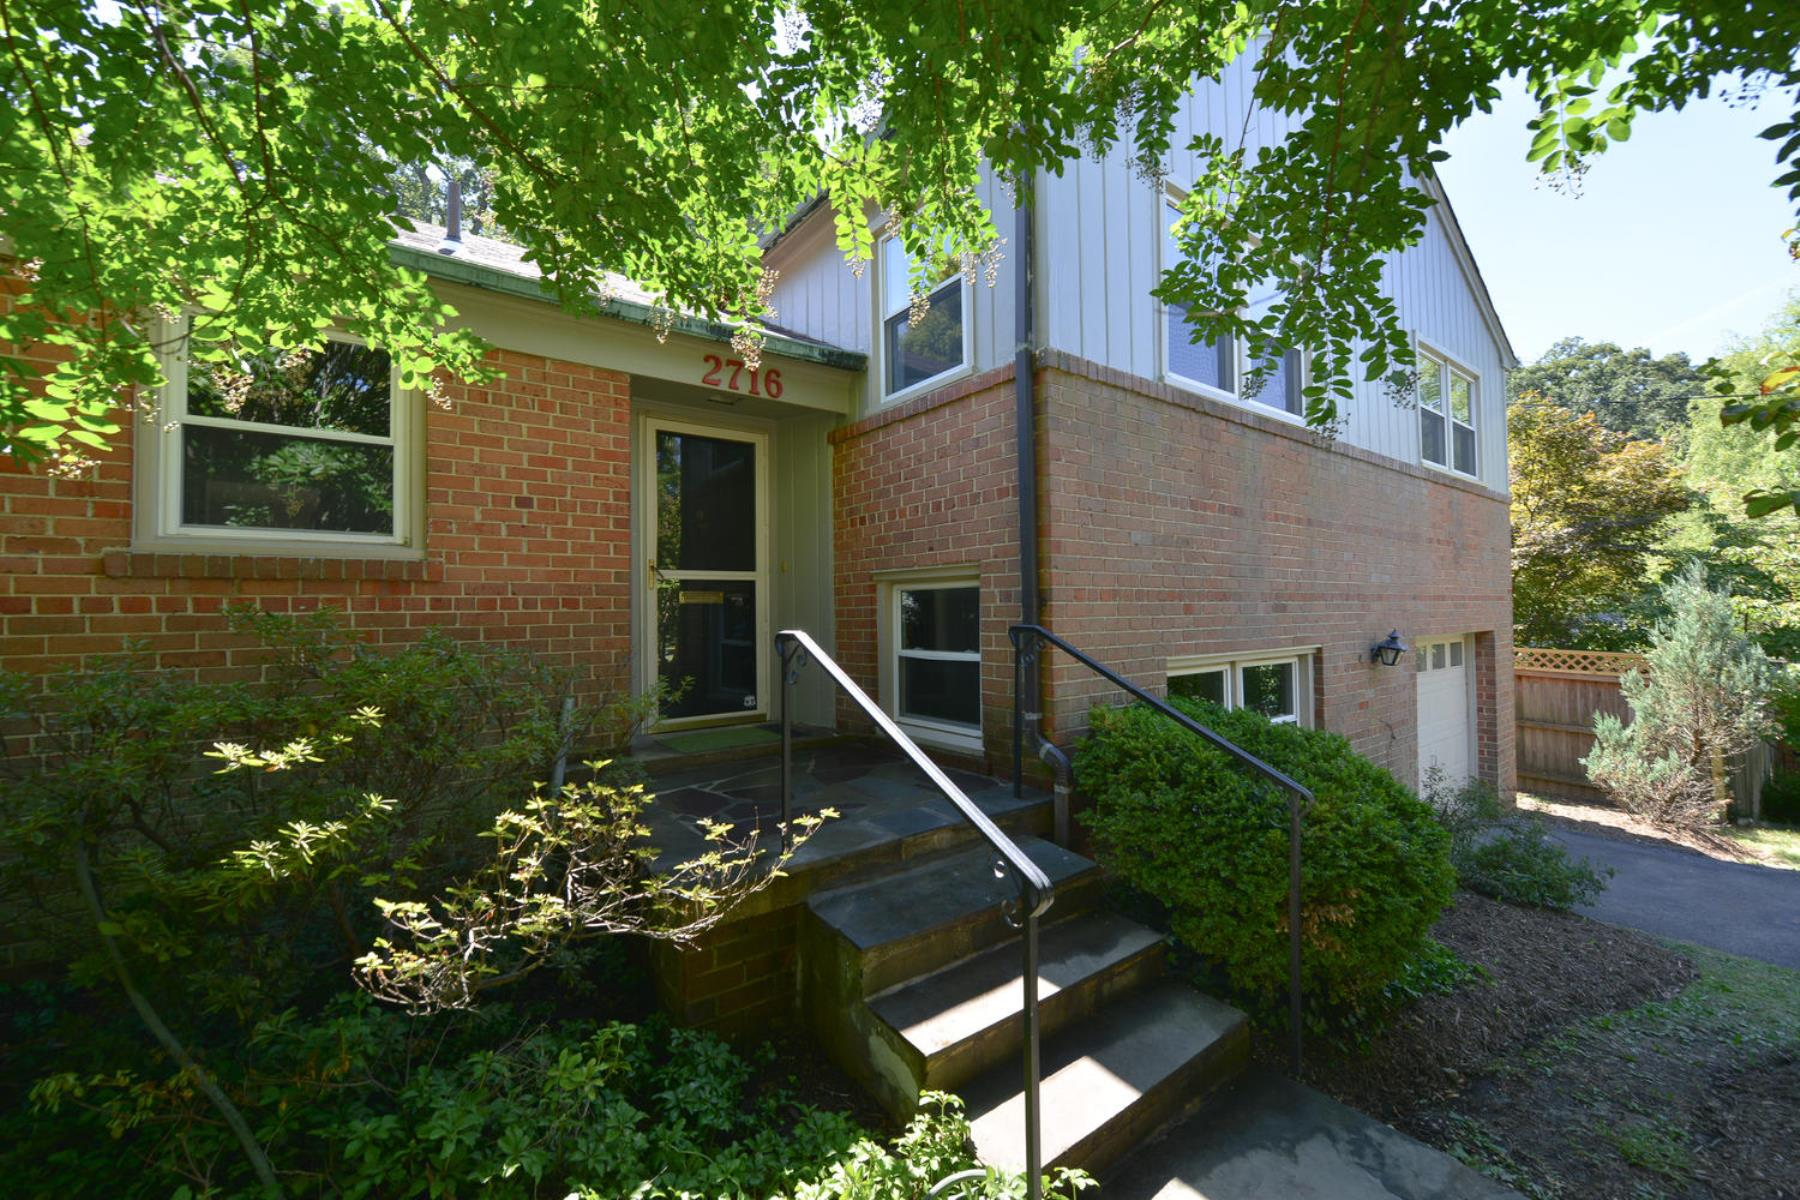 Property For Sale at 2716 Newlands Street Nw, Washington